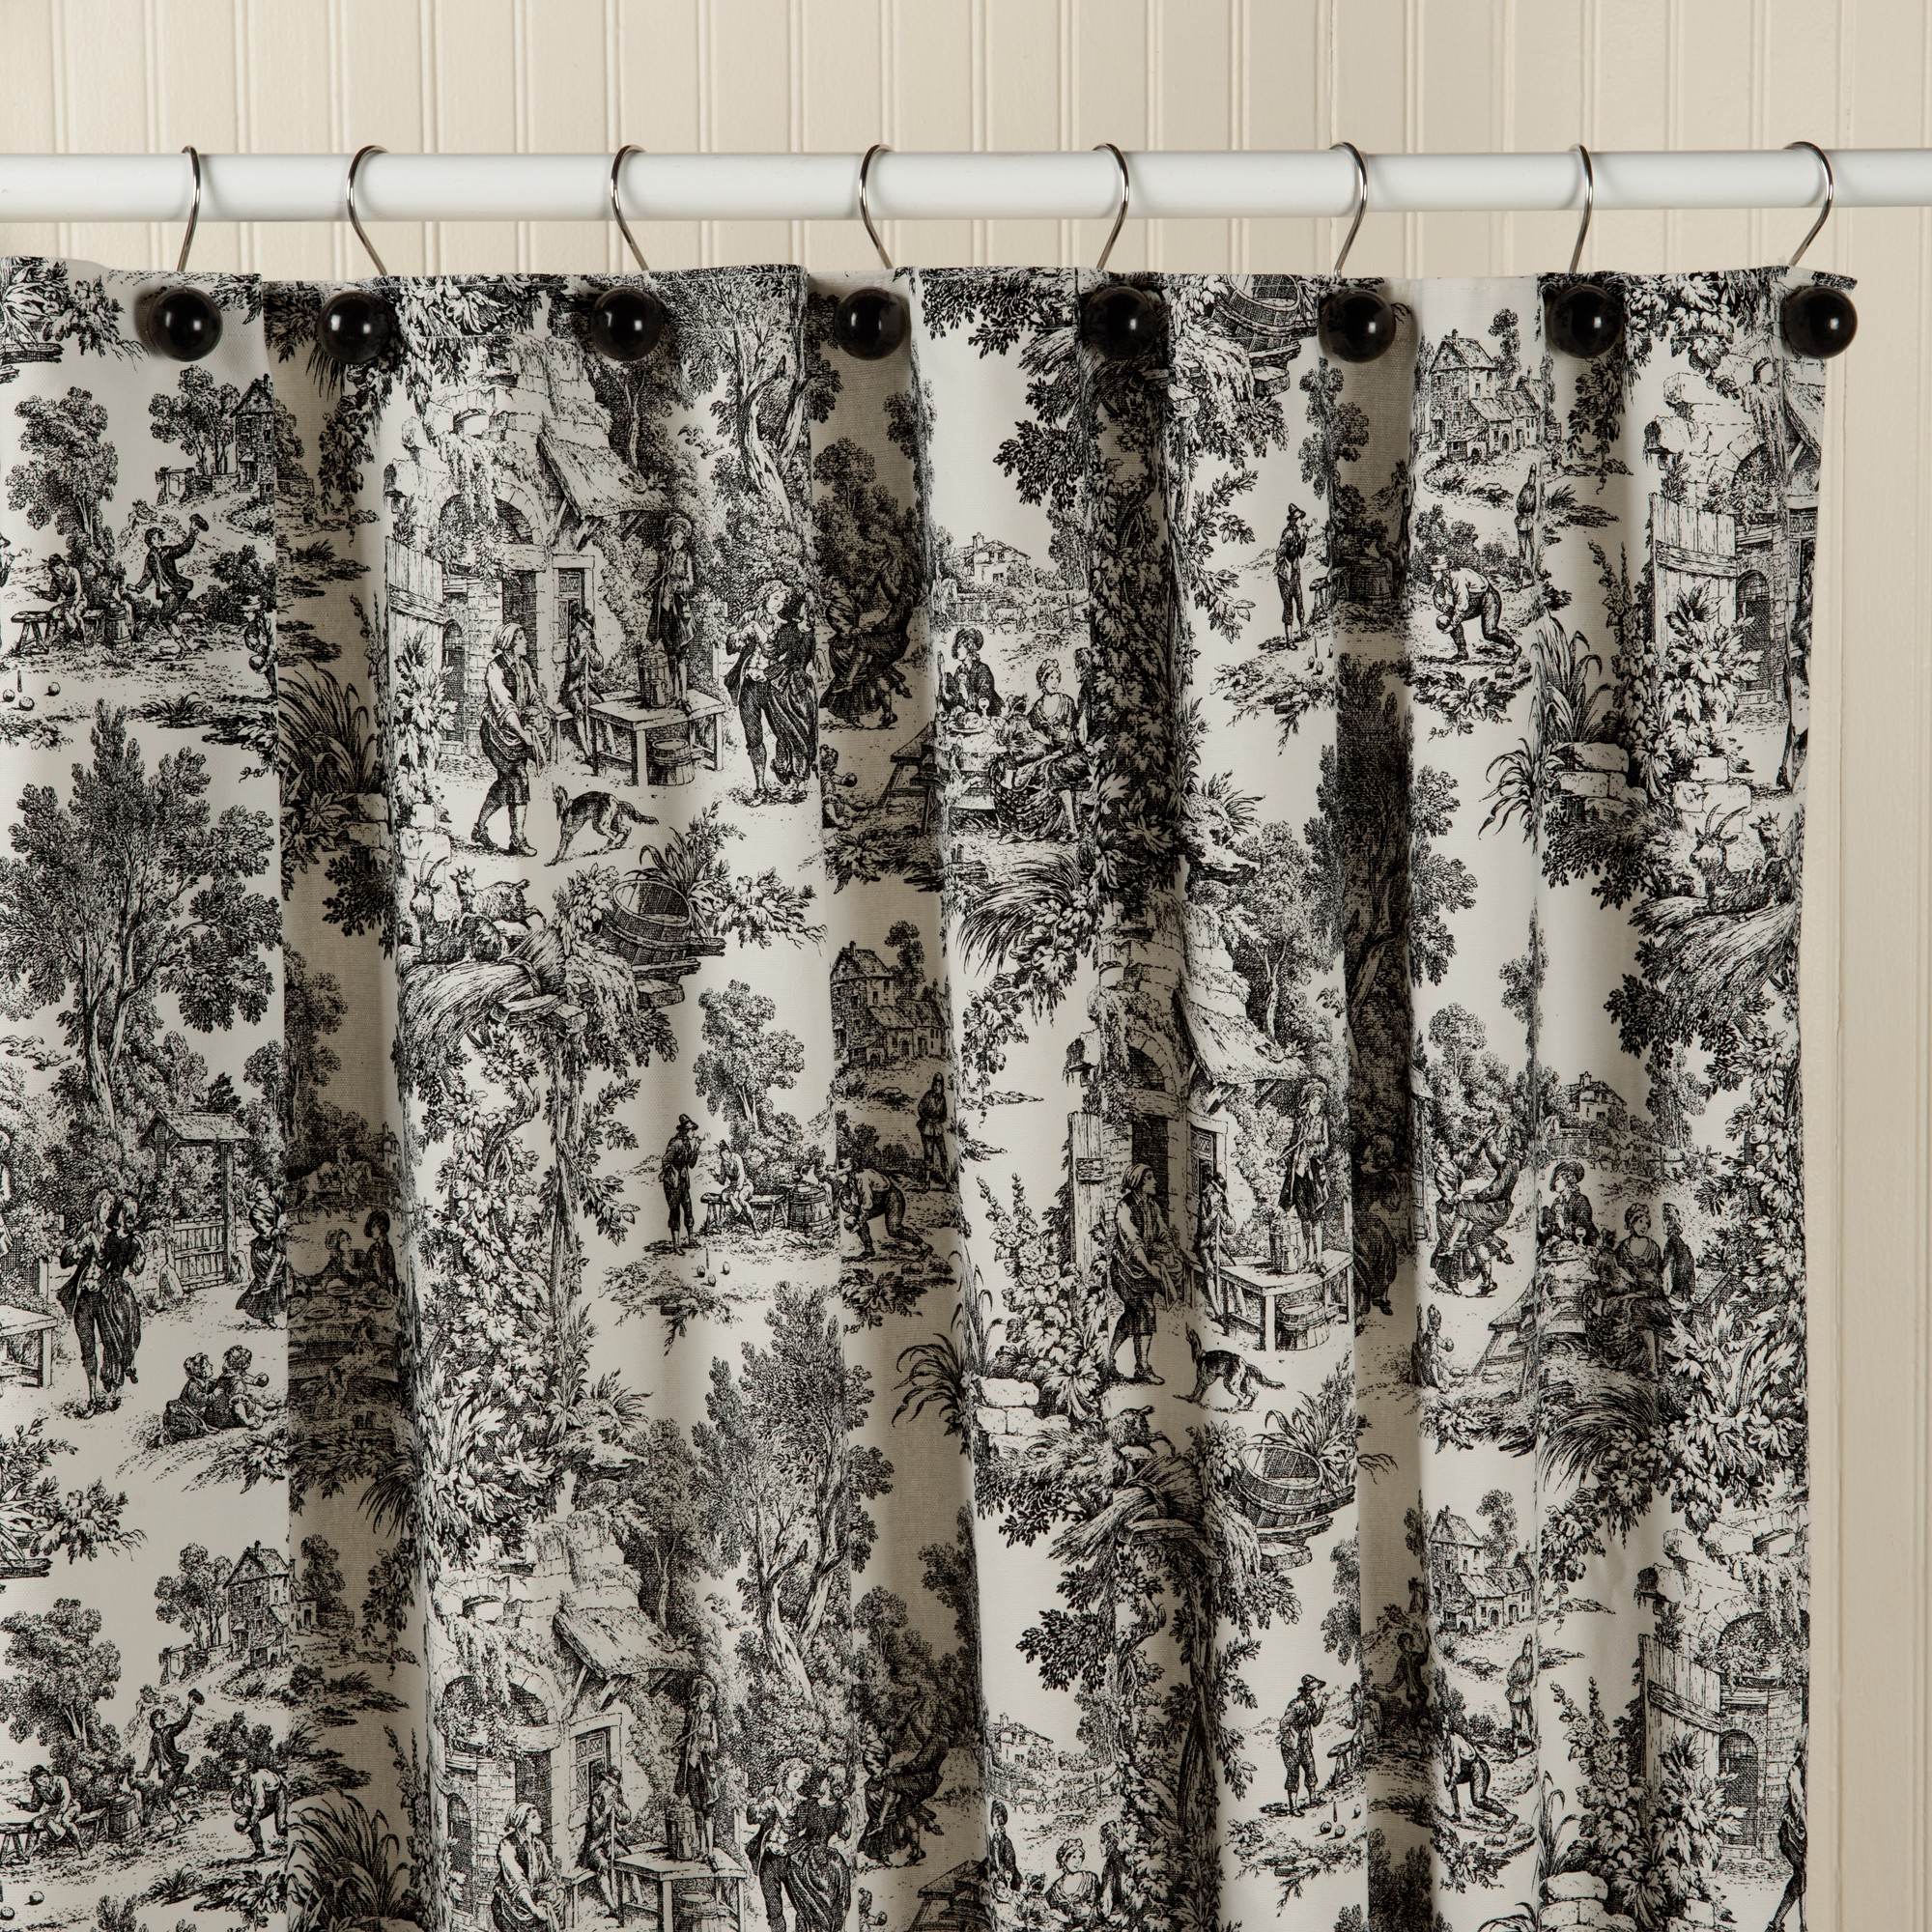 Toile Shower Curtains Black White • Shower Curtains Ideas